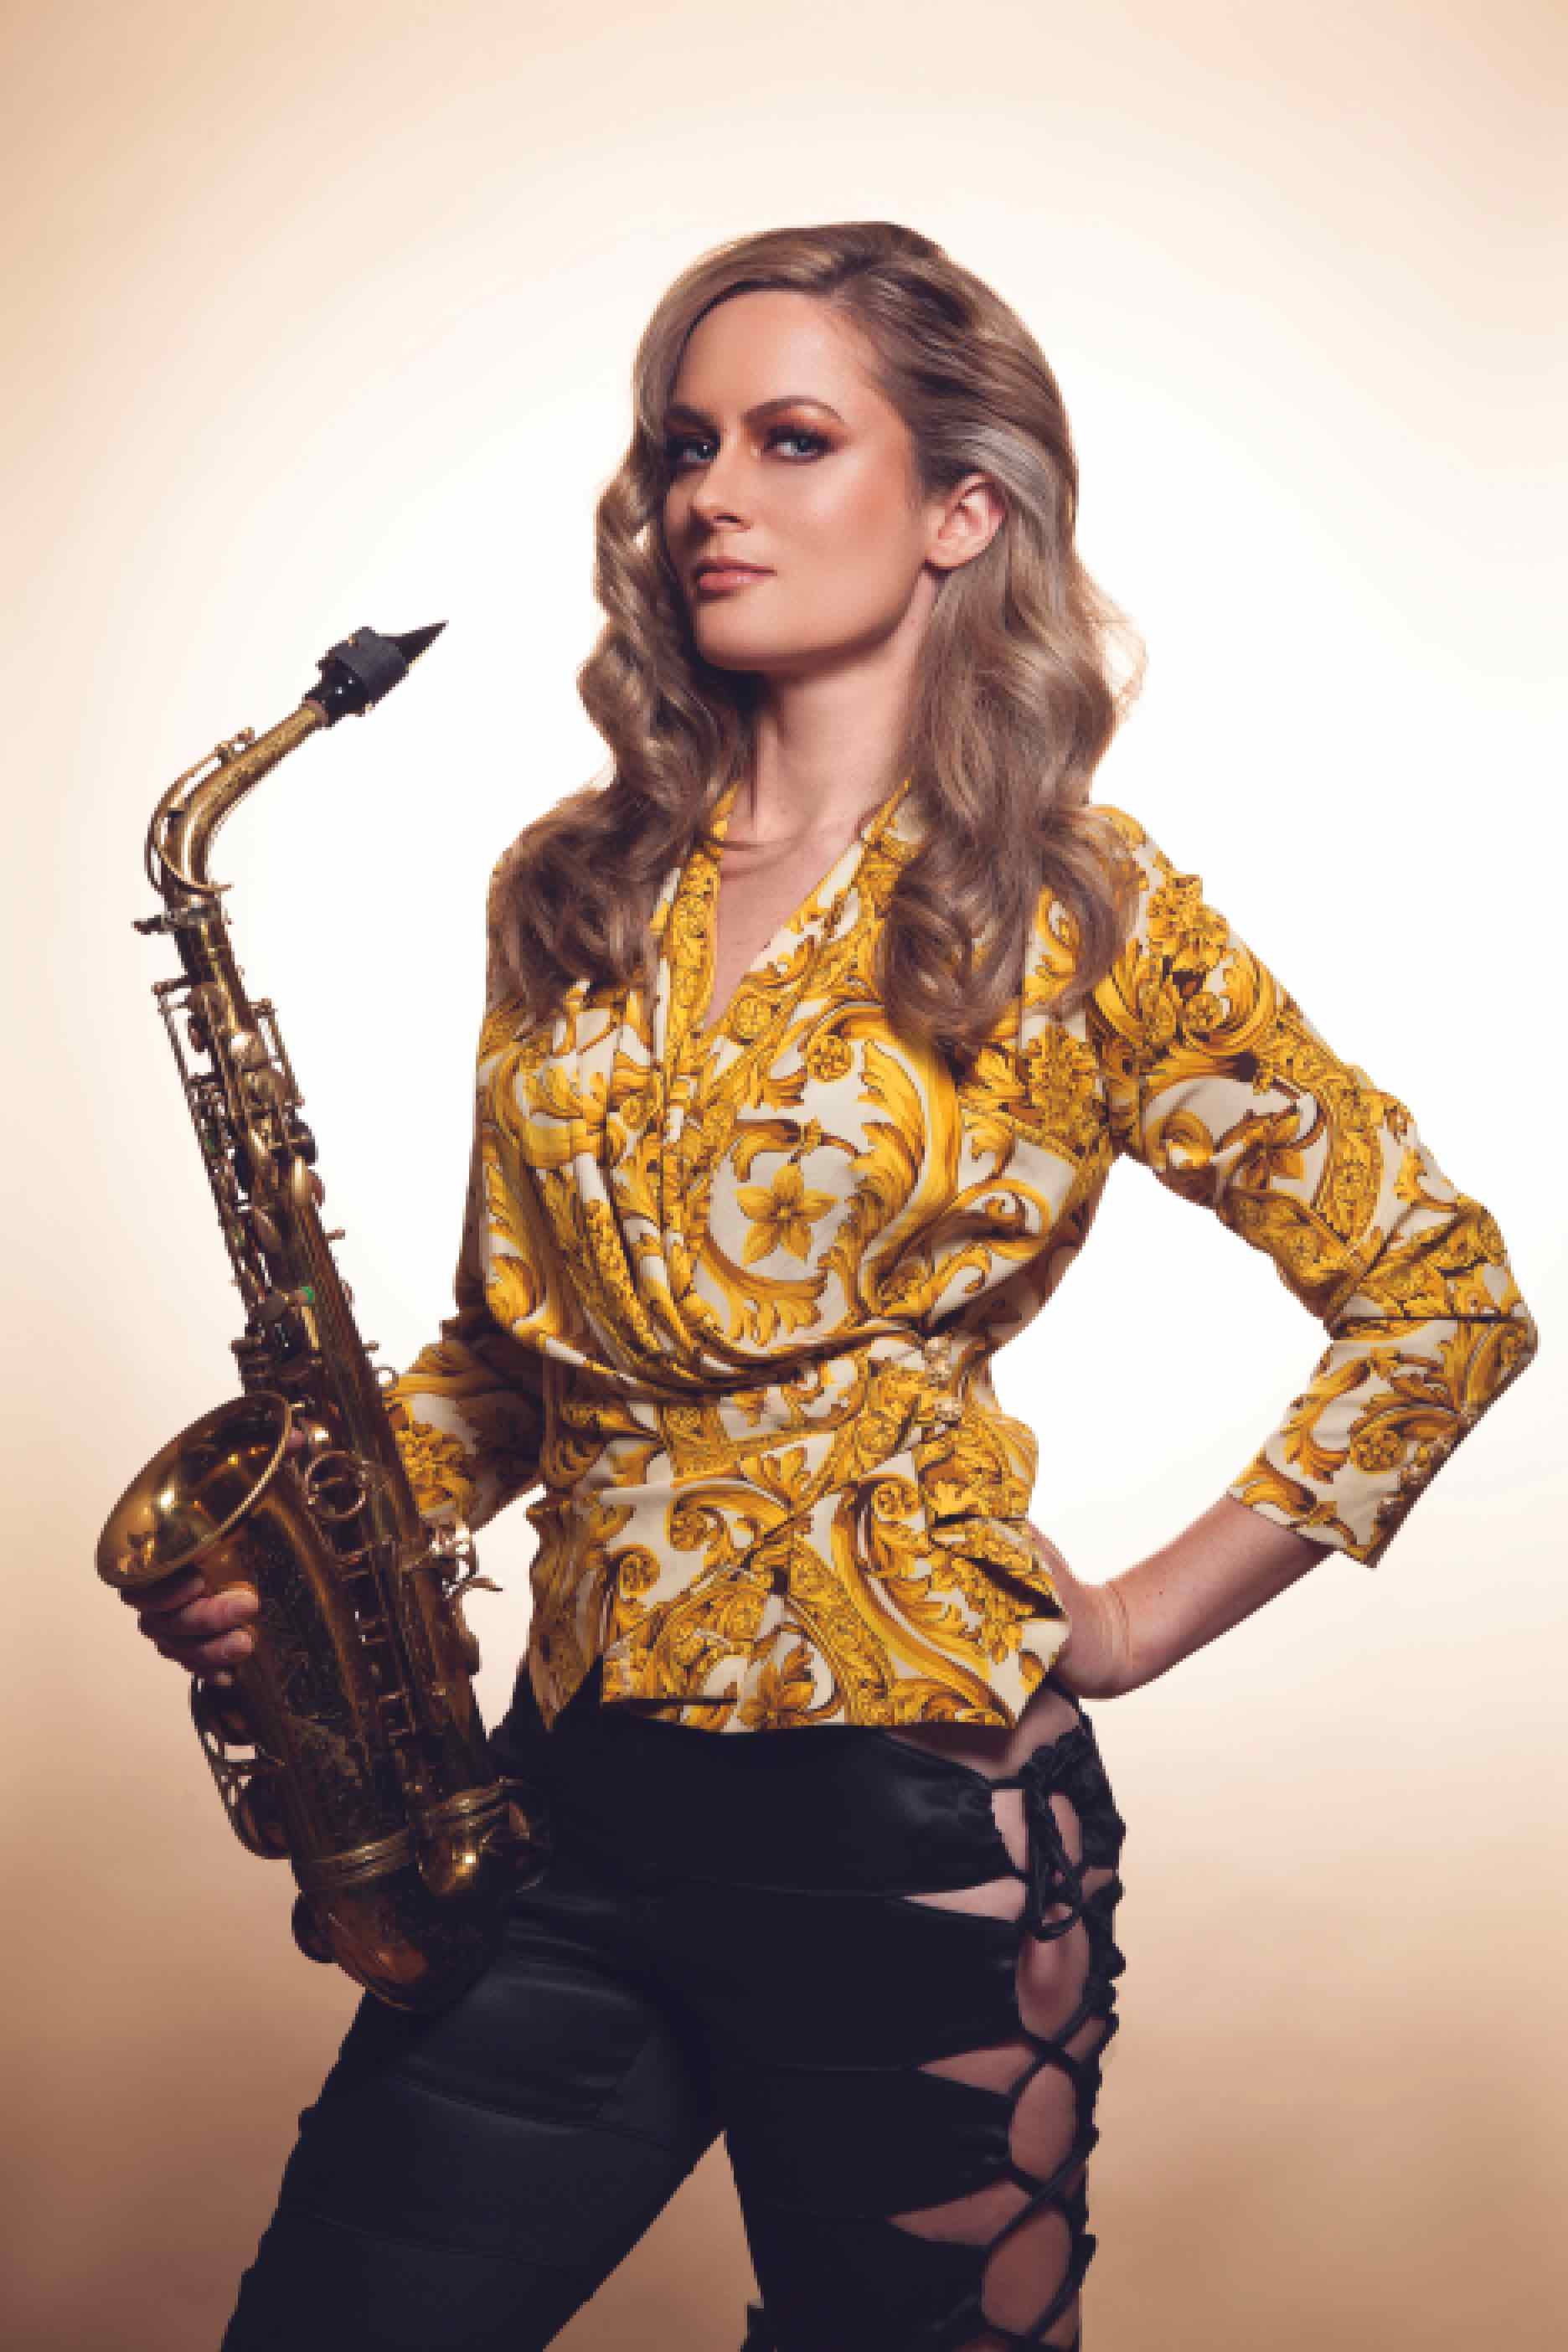 Photoshoot Versace Shirt n Sax Small File Size